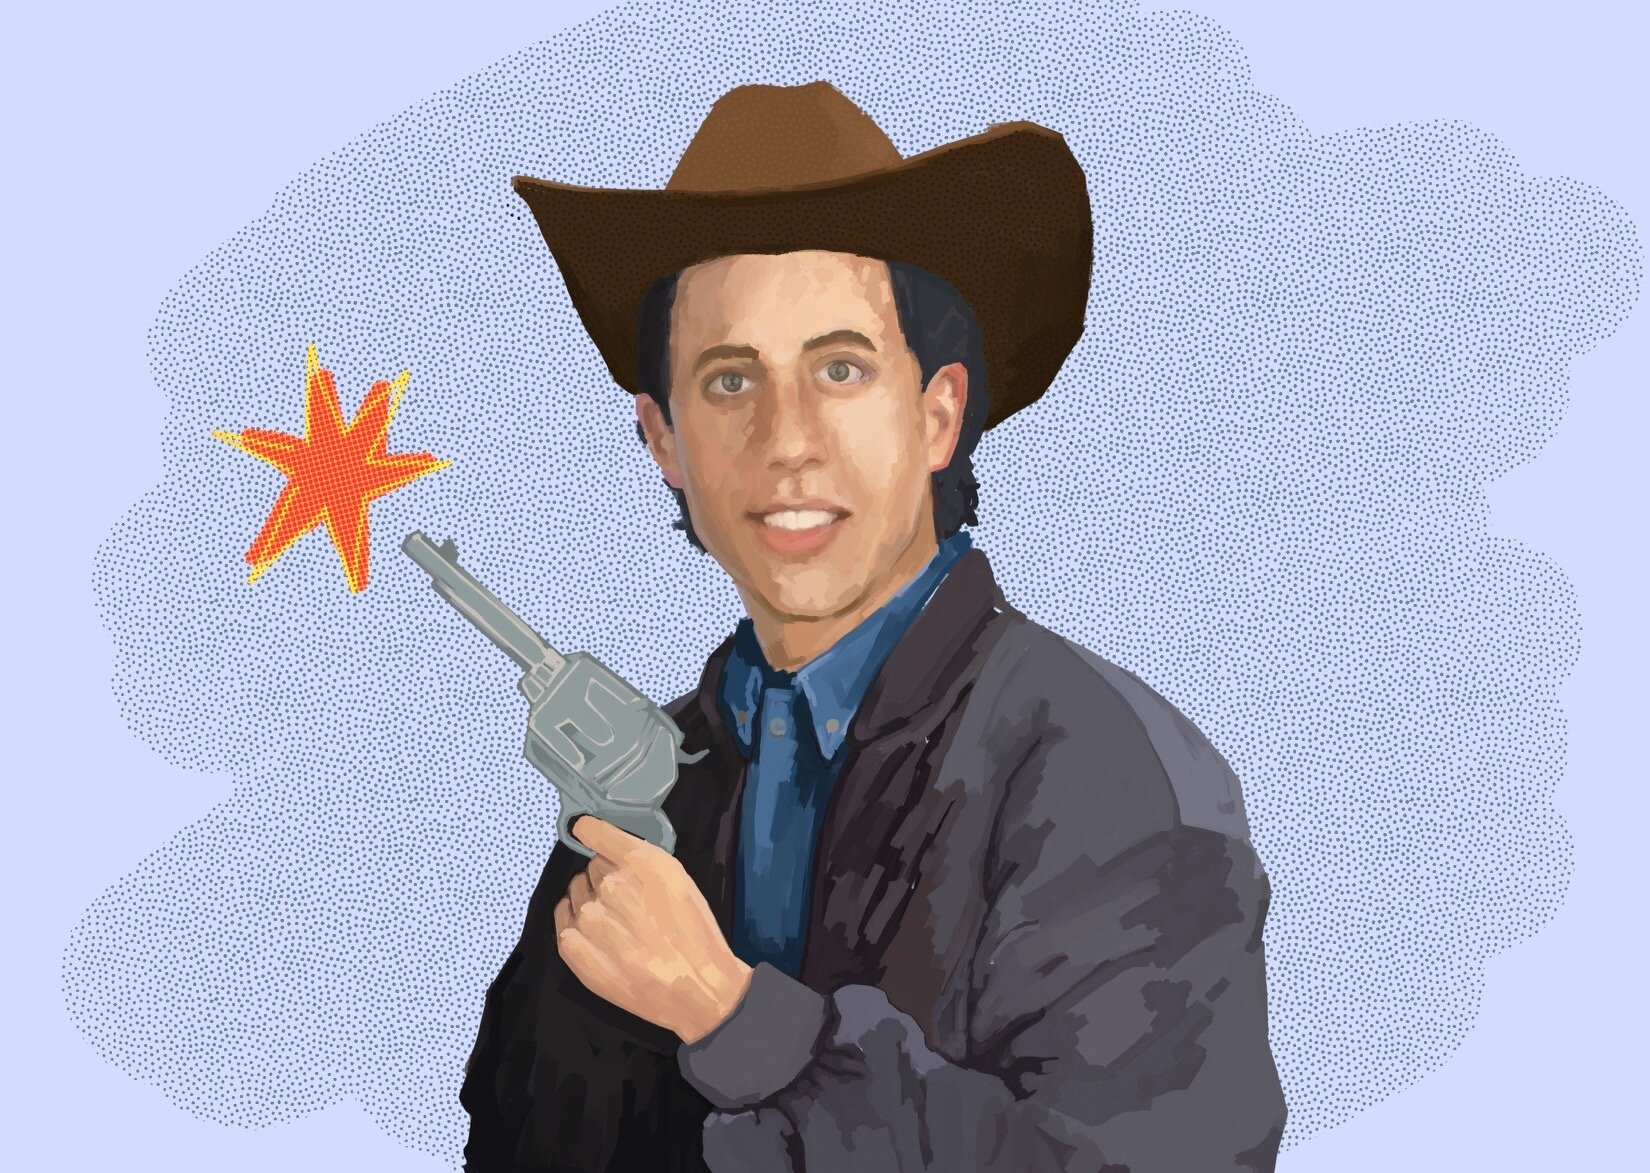 """Top 5 Seinfeld Episodes That Will Make You Say """"Wait, This Isn't Westworld"""""""